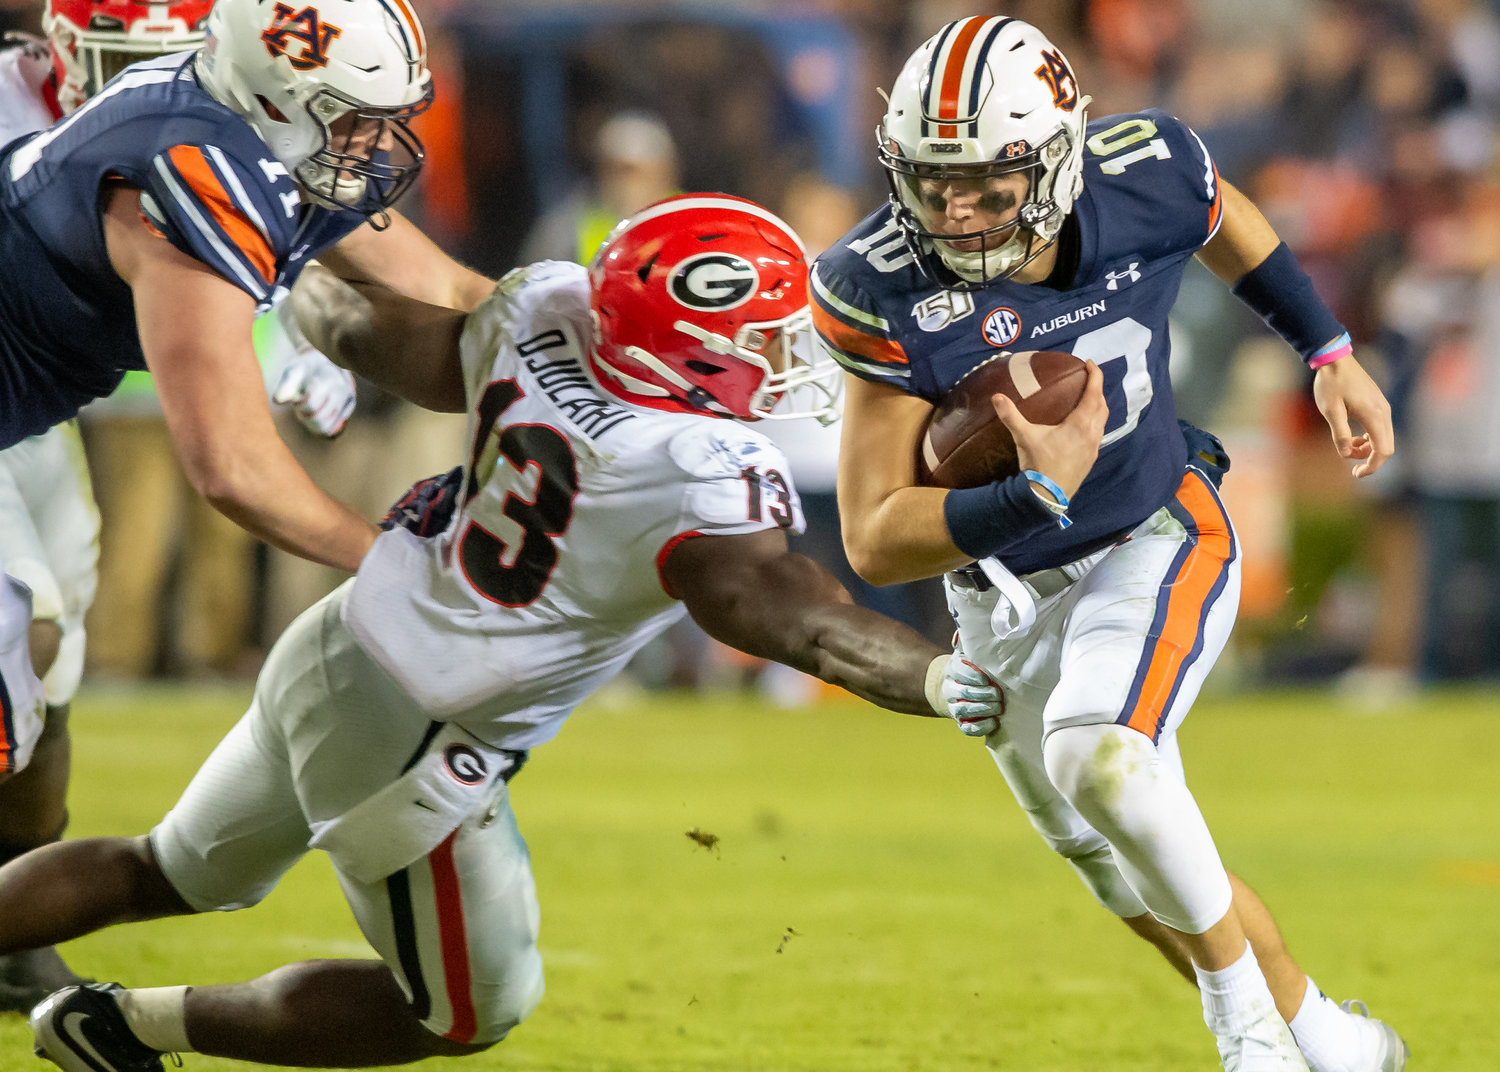 Auburn Tigers quarterback Bo Nix (10) runs past the outstretched arm of Georgia Bulldogs linebacker Azeez Ojulari (13) during the second half of Saturday's game, at Jordan-Hare Stadium in Auburn,, AL. Daily Mountain Eagle -  Jeff Johnsey